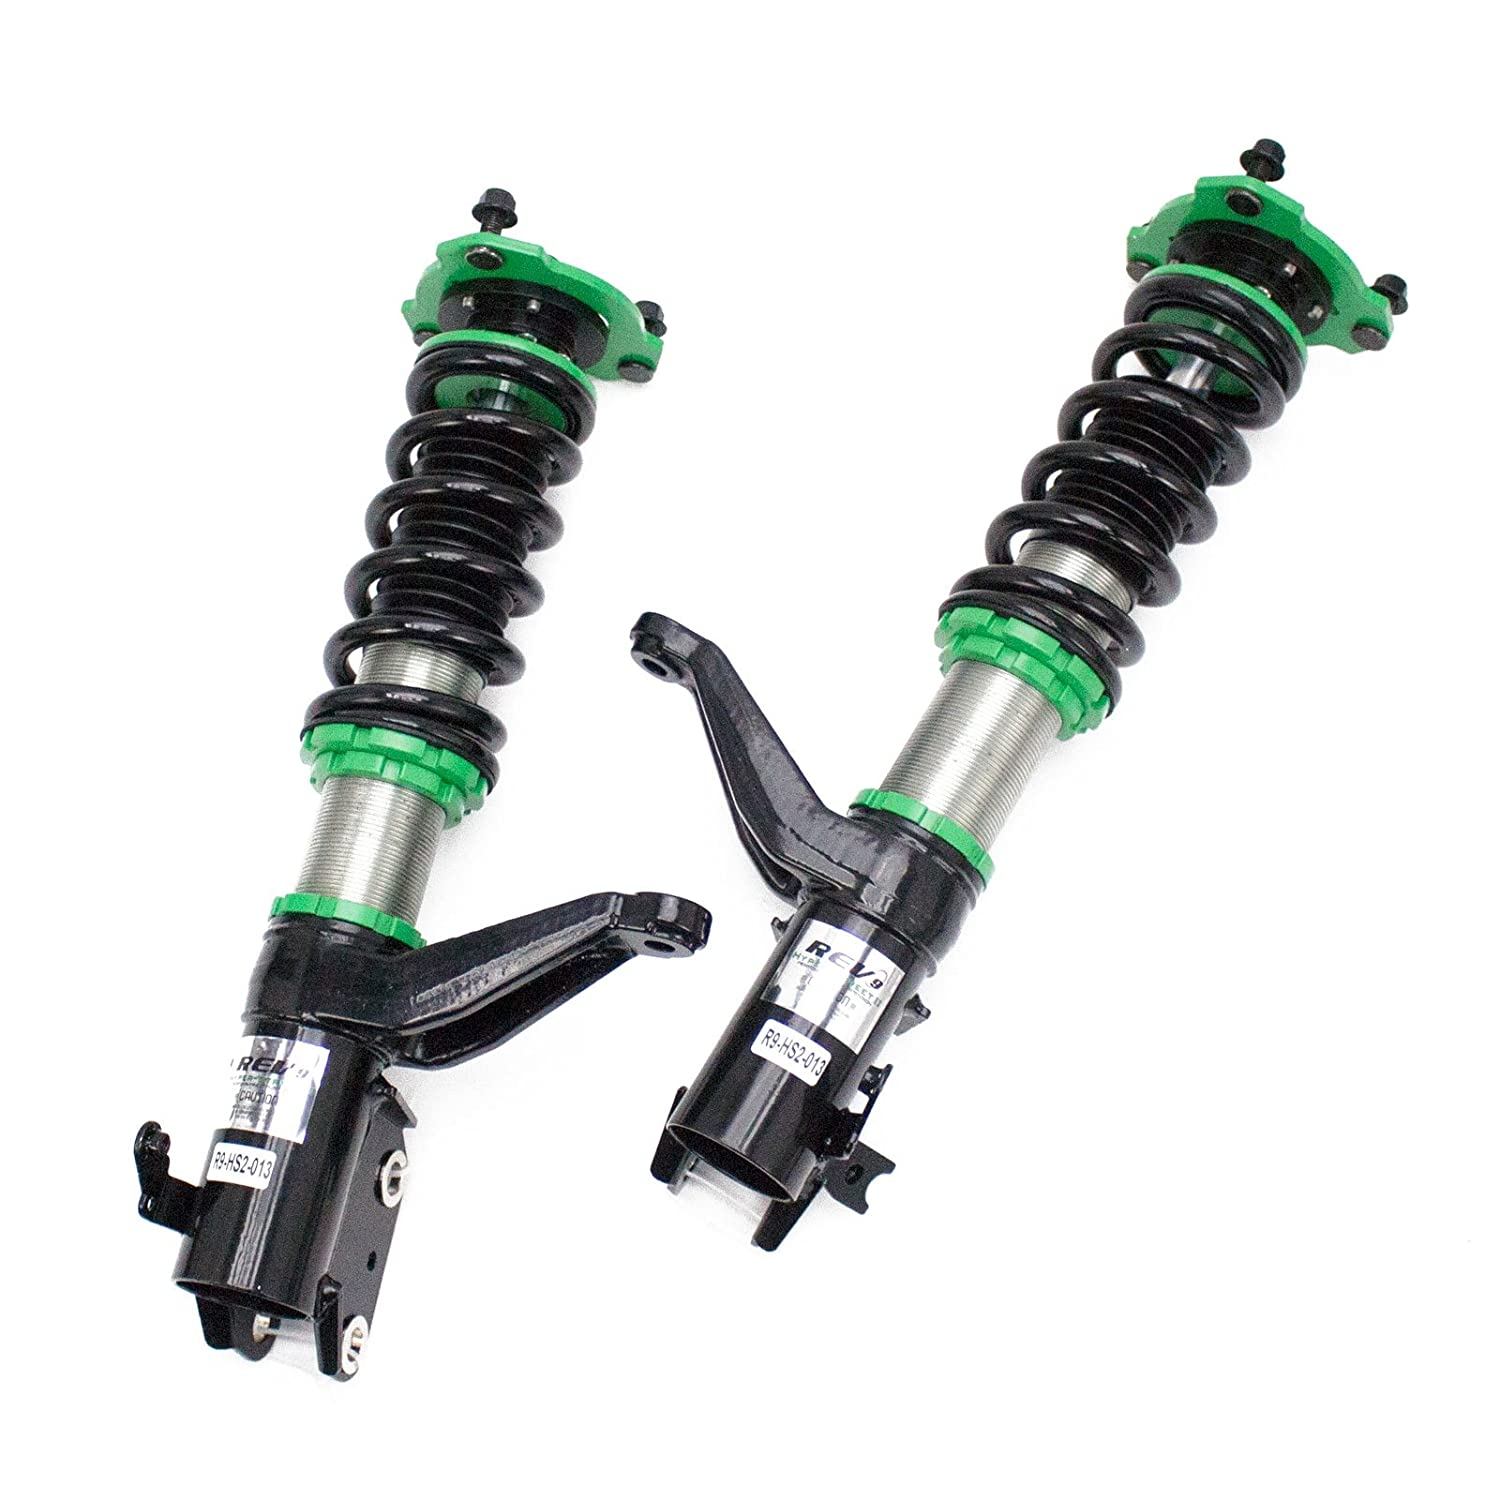 32 Damping Level Adjustment Si 2002-05 Hyper-Street II Coilovers Lowering Kit by Rev9 EP3 R9-HS2-013/_3 made for Honda Civic